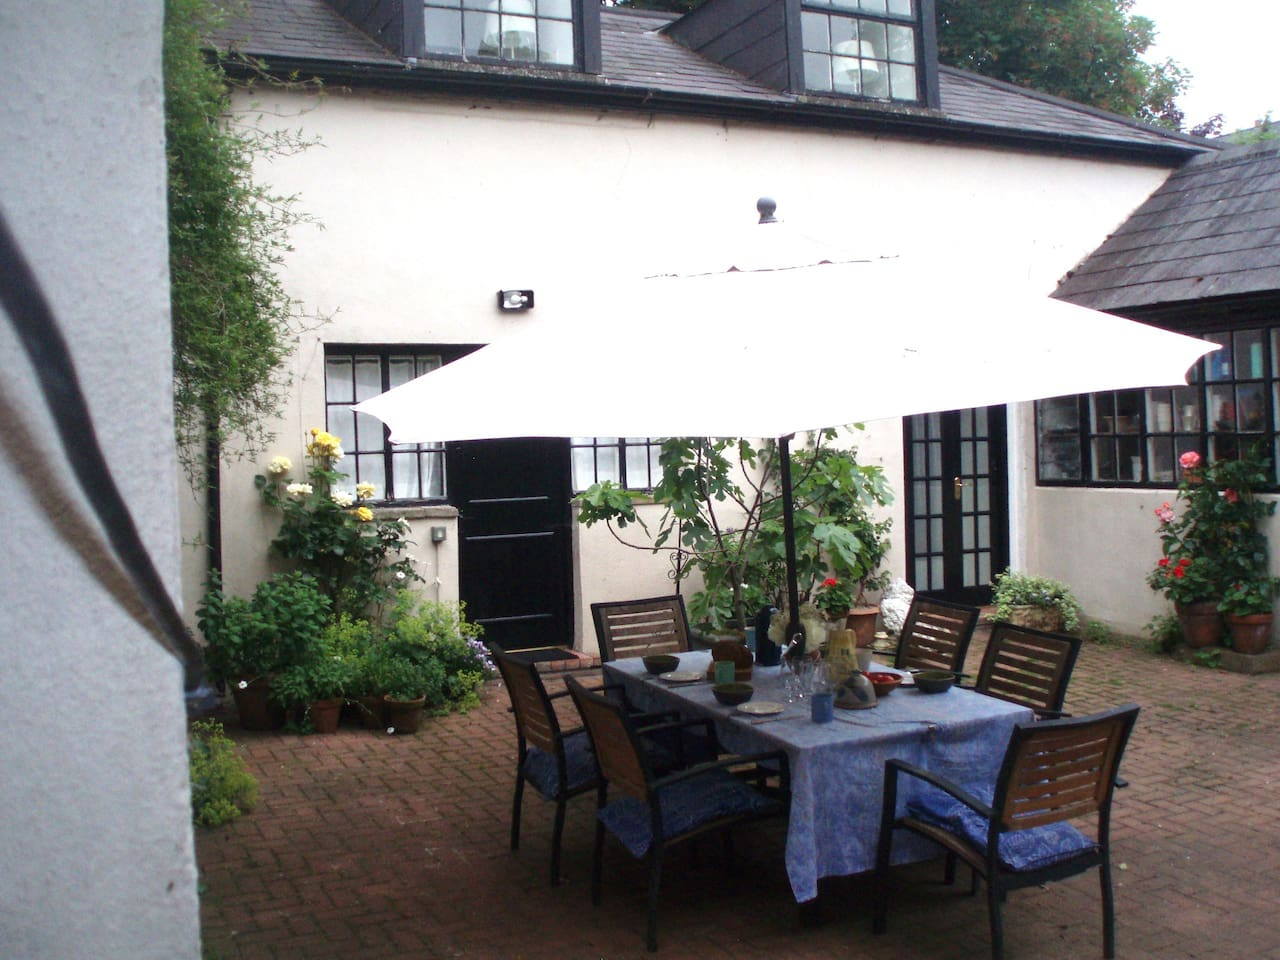 The Garden Mews in its  courtyard setting.